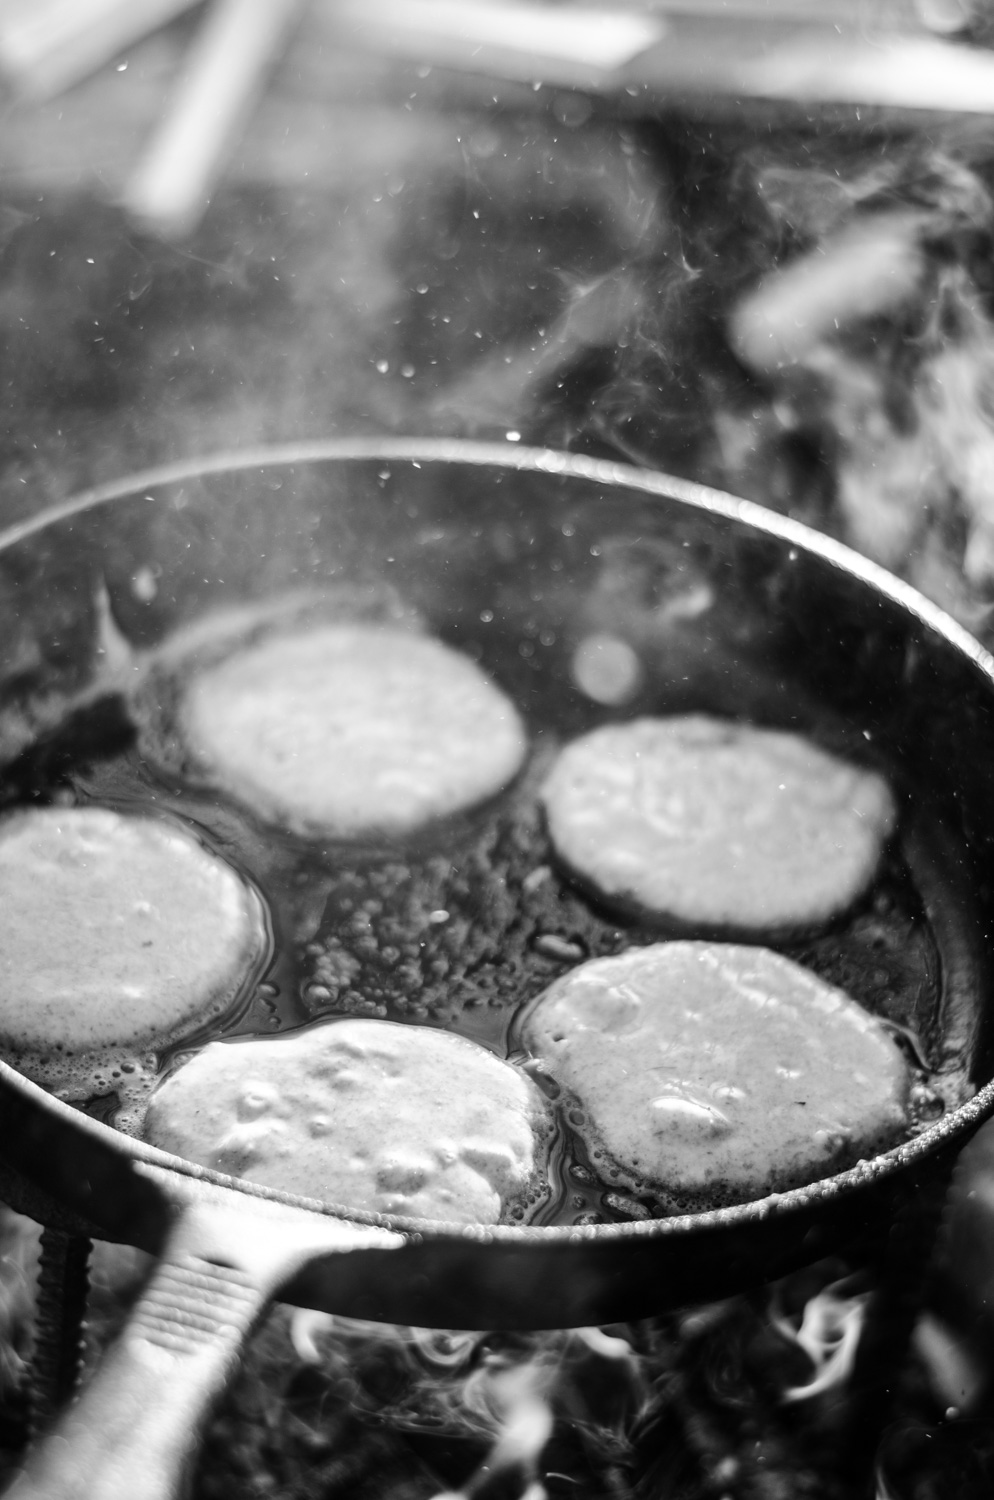 """""""What can you see happening in the pan?"""", """"What can you smell?"""", """"What noises can you hear?"""" """" Do the pancakes melt like the butter? """" - The processes of cooking go much deeper than the simple mechanics we take for granted. It's important to talk through these extra sensory experiences with the children to help aid their understanding and ultimately their enjoyment."""